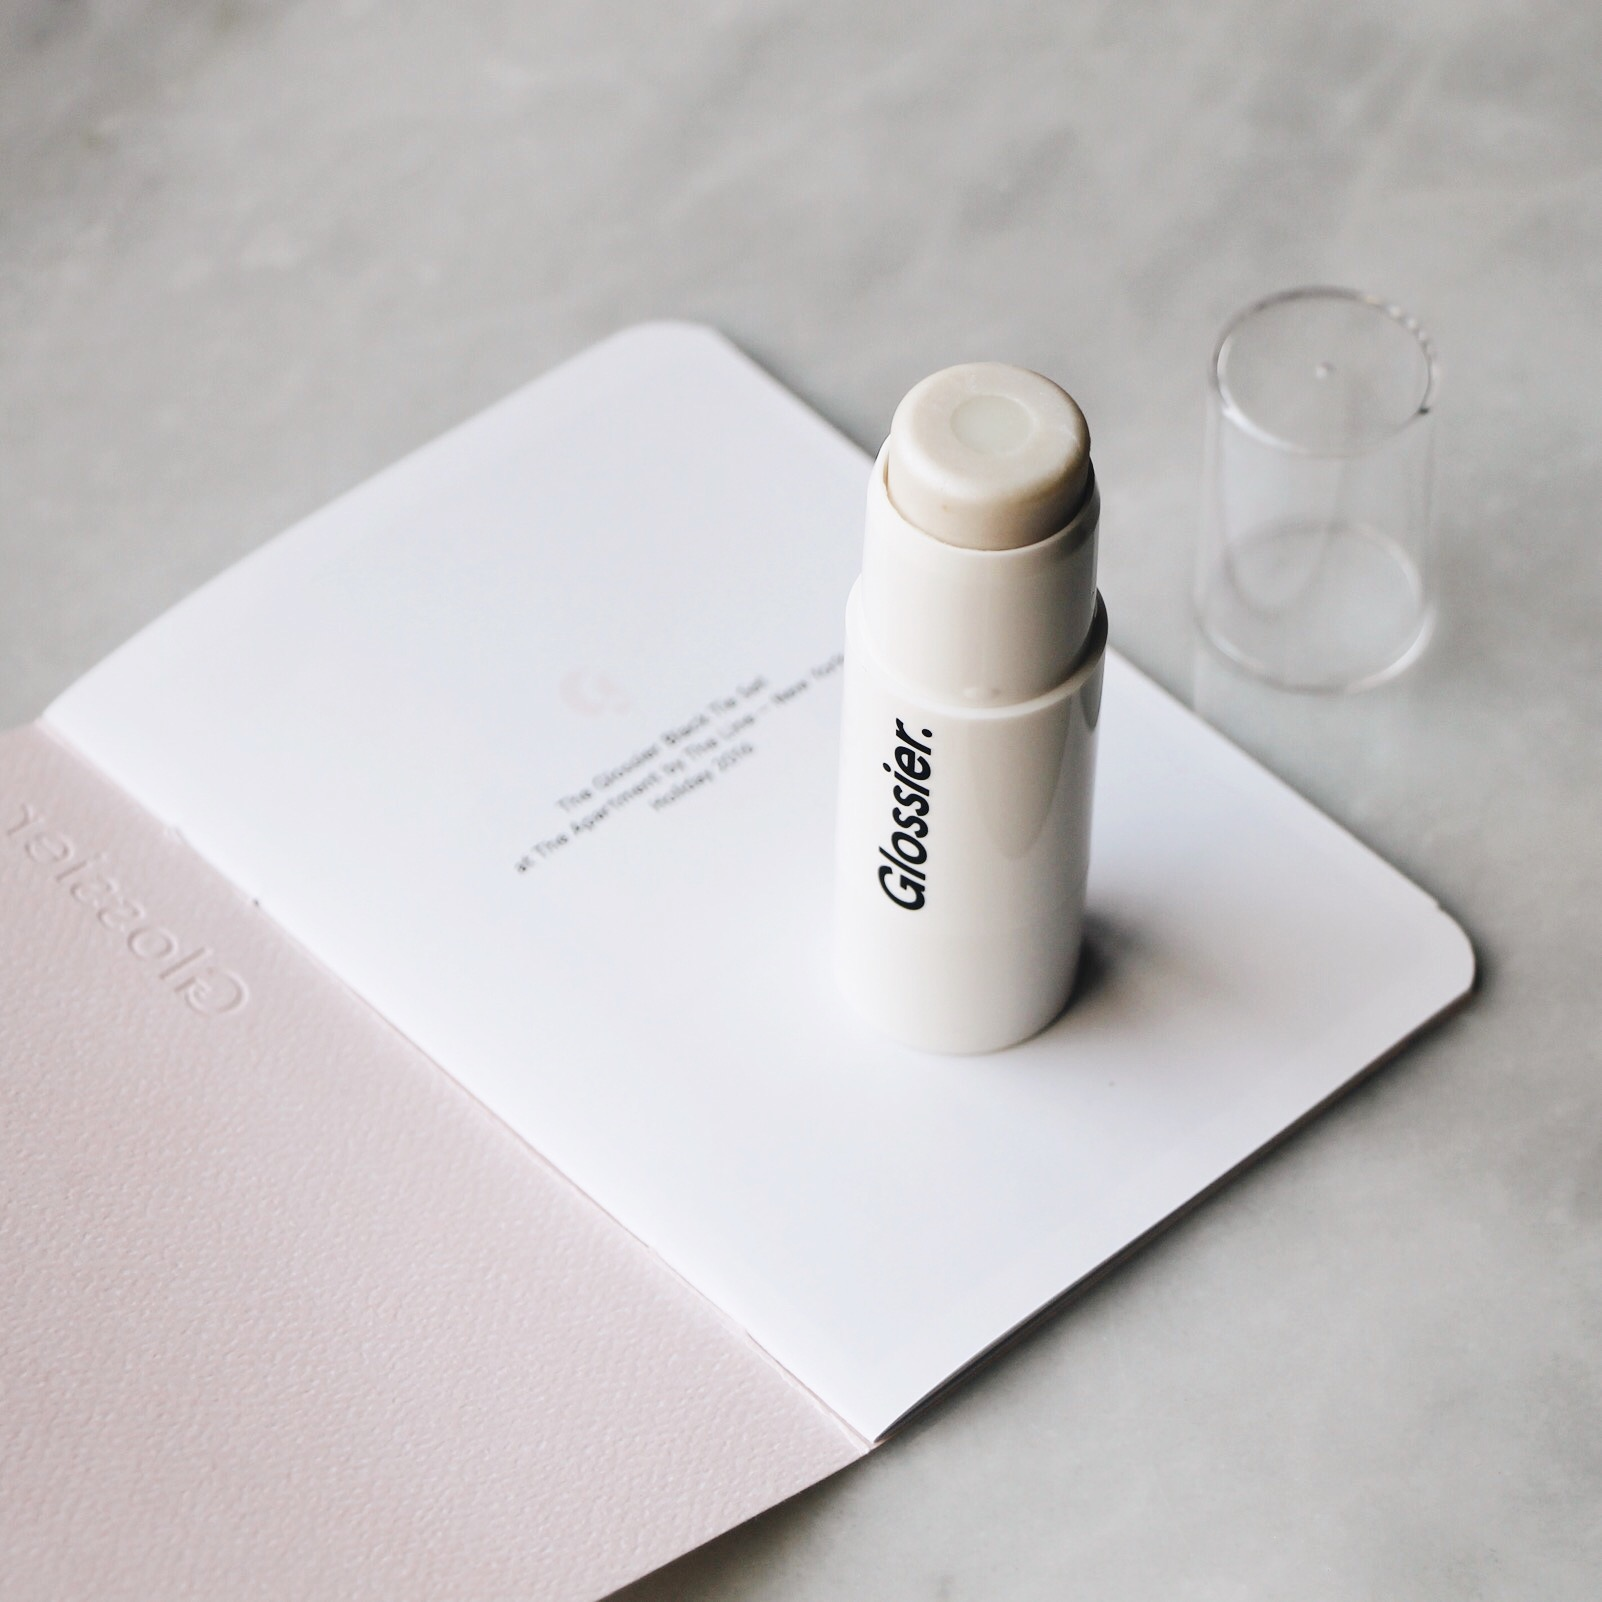 Glossier Black Tie Set, Glossier Black Tie Set Review Glossier, Black Tie Set, Limited Edition Black Tie Set, Glossier Holiday 2016, Glossier Limited Edition, Haloscope in Moonstone, Glossier Pink, Glossier Nail Polish, Glossier Eyeliner, Glossier Lip Gloss, Moonstone, Haloscope in Moonstone